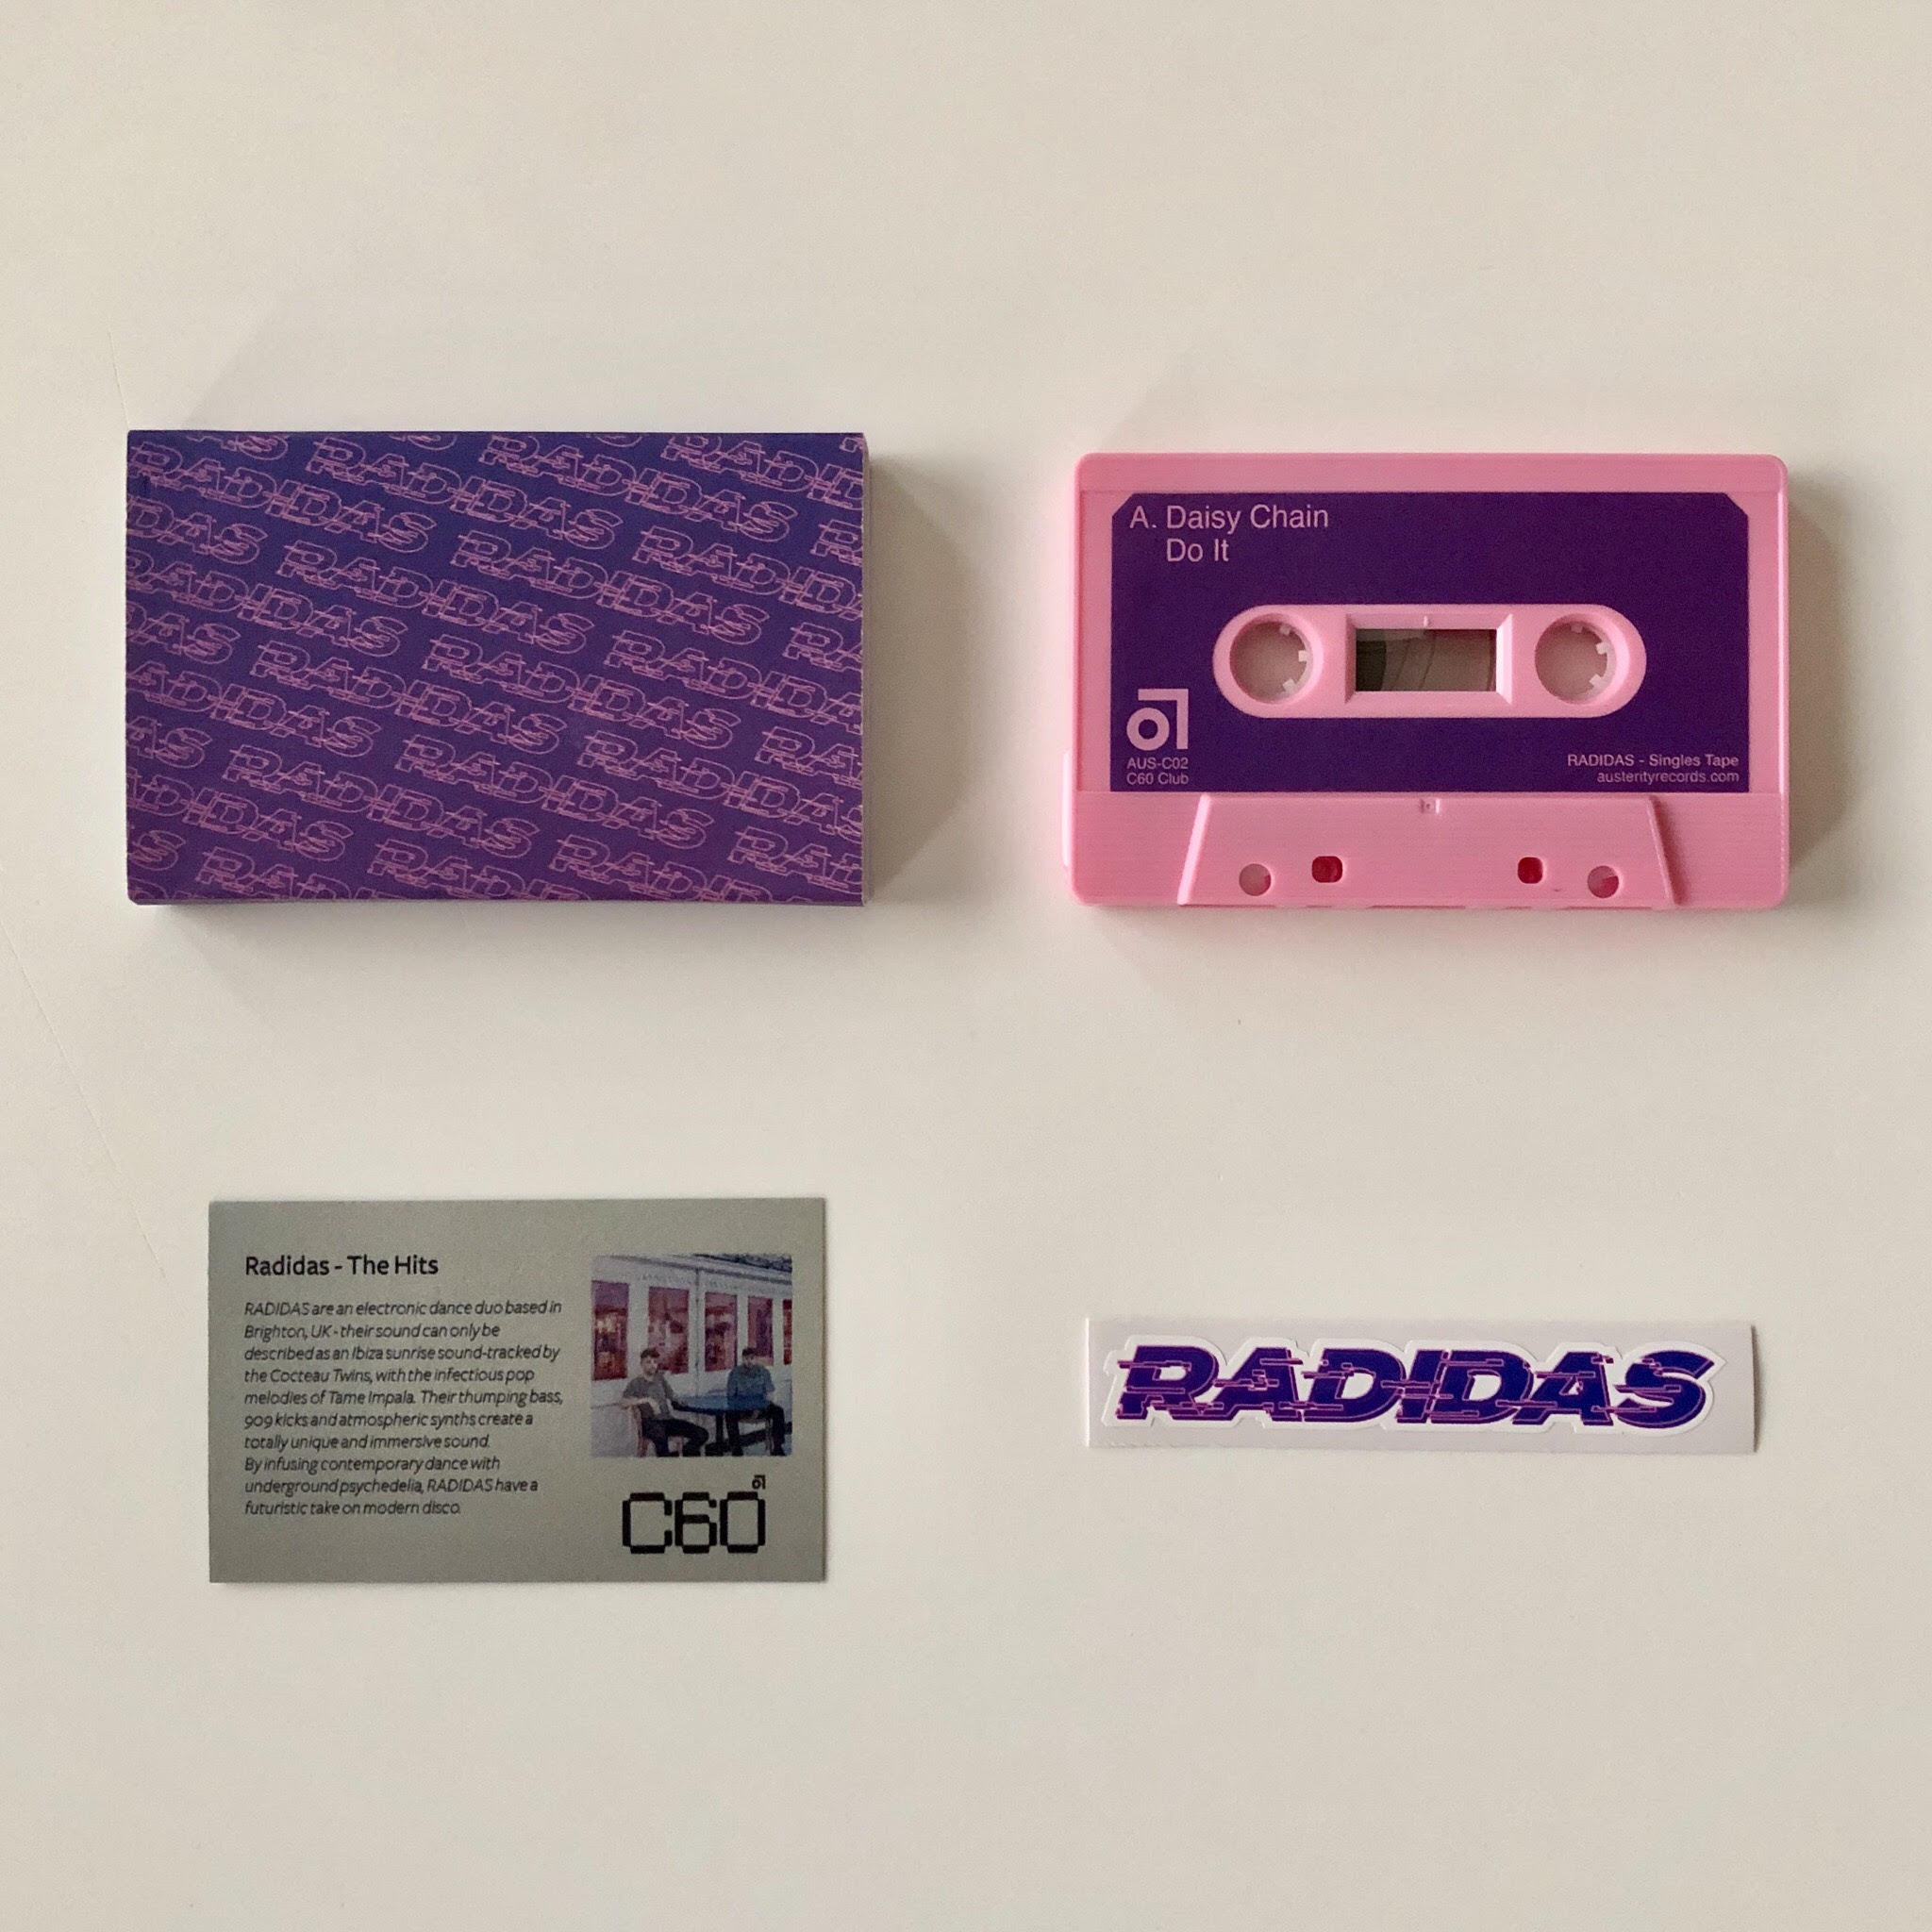 Radidas - The Hits (Very limited baby pink cassette)